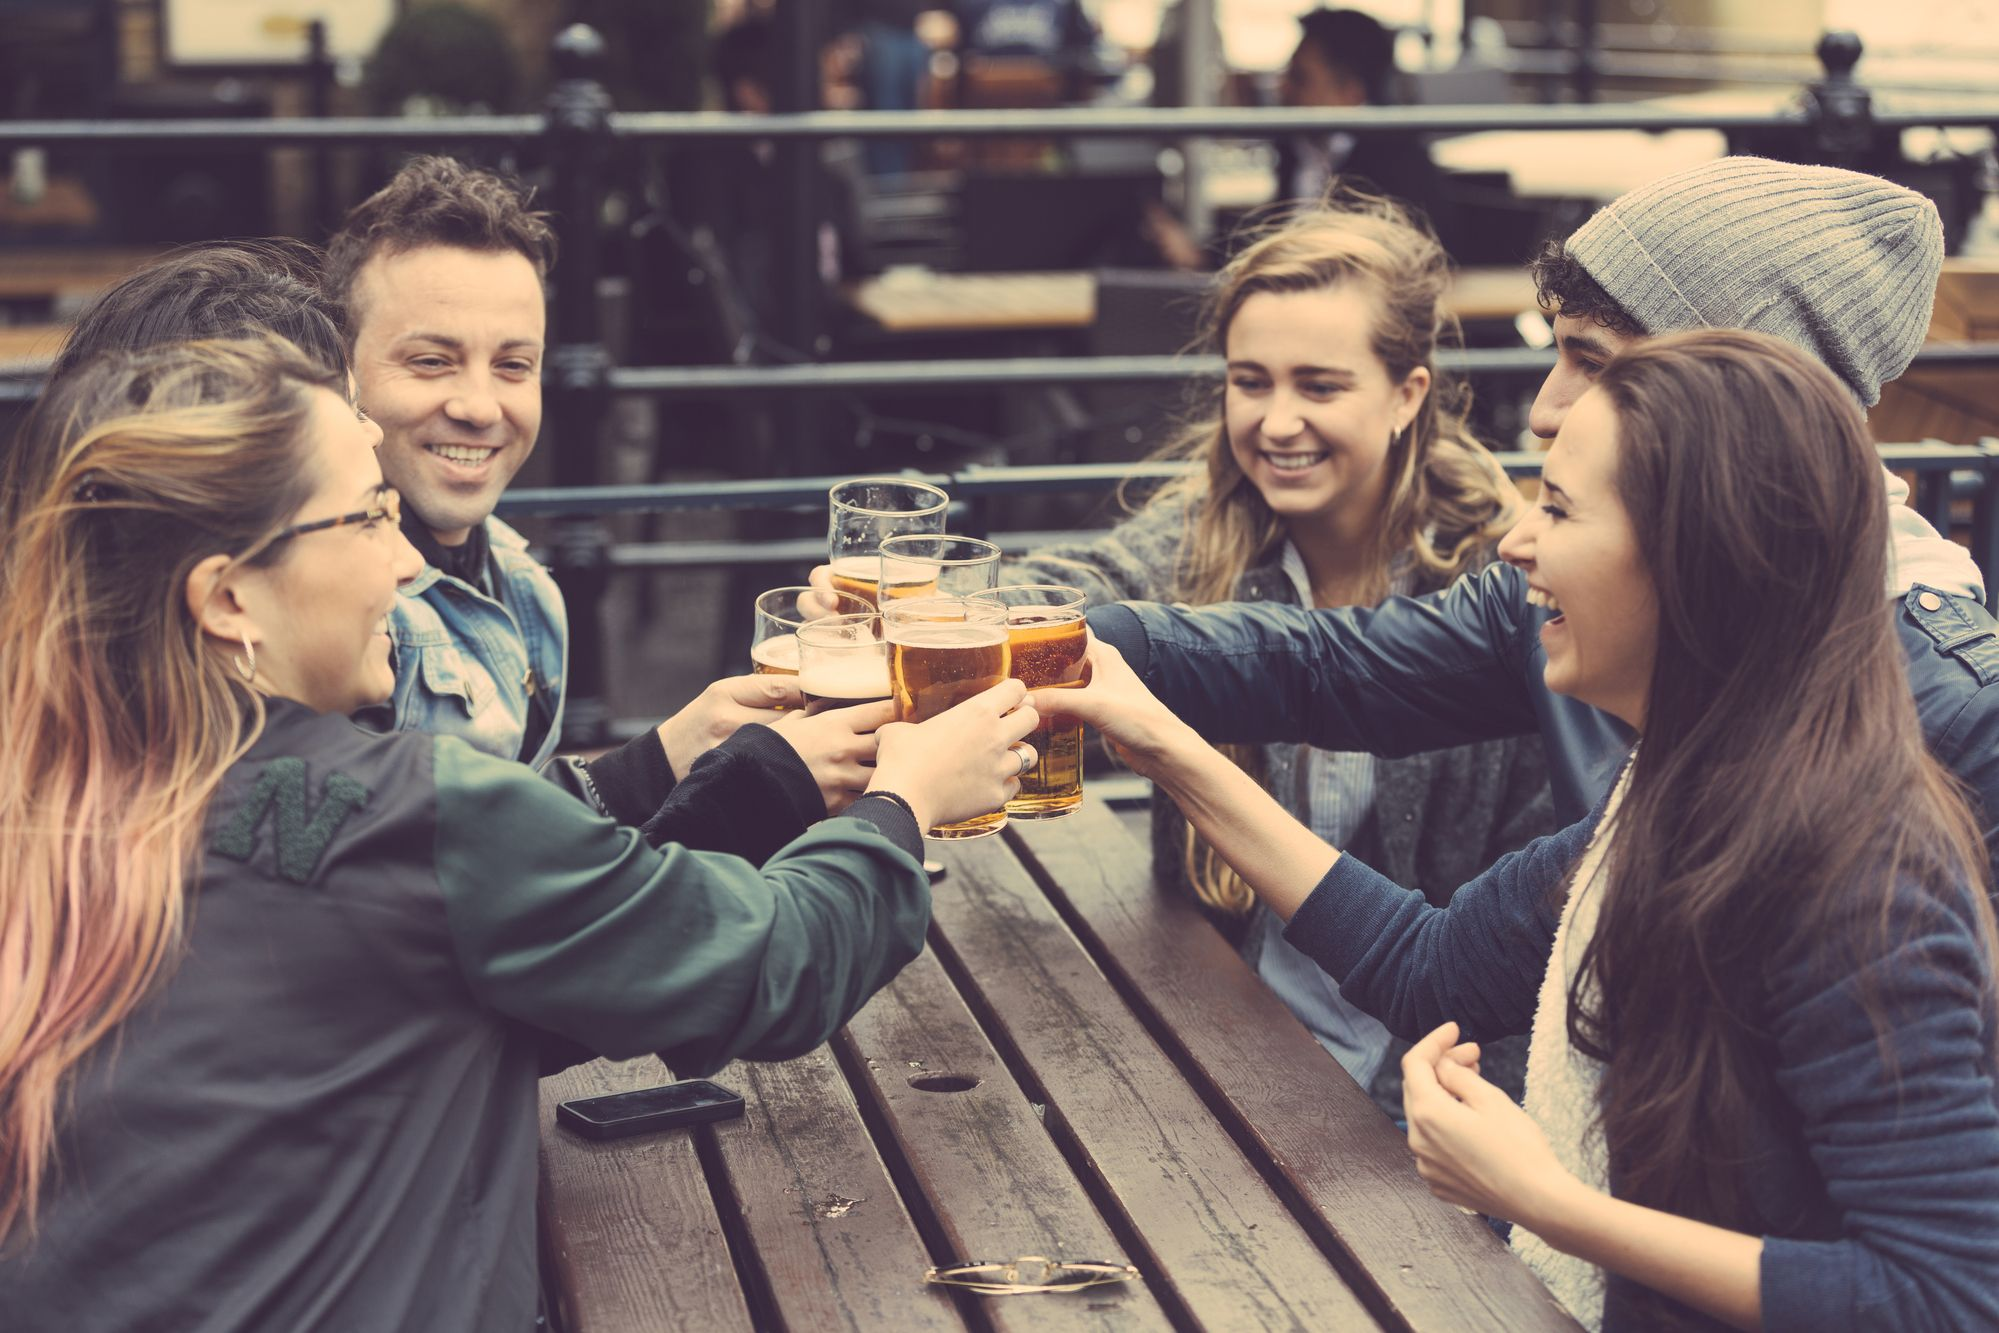 UK entertainment guide - things to do in London and the UK. Find UK pubs, restaurants and things to do in your time off work